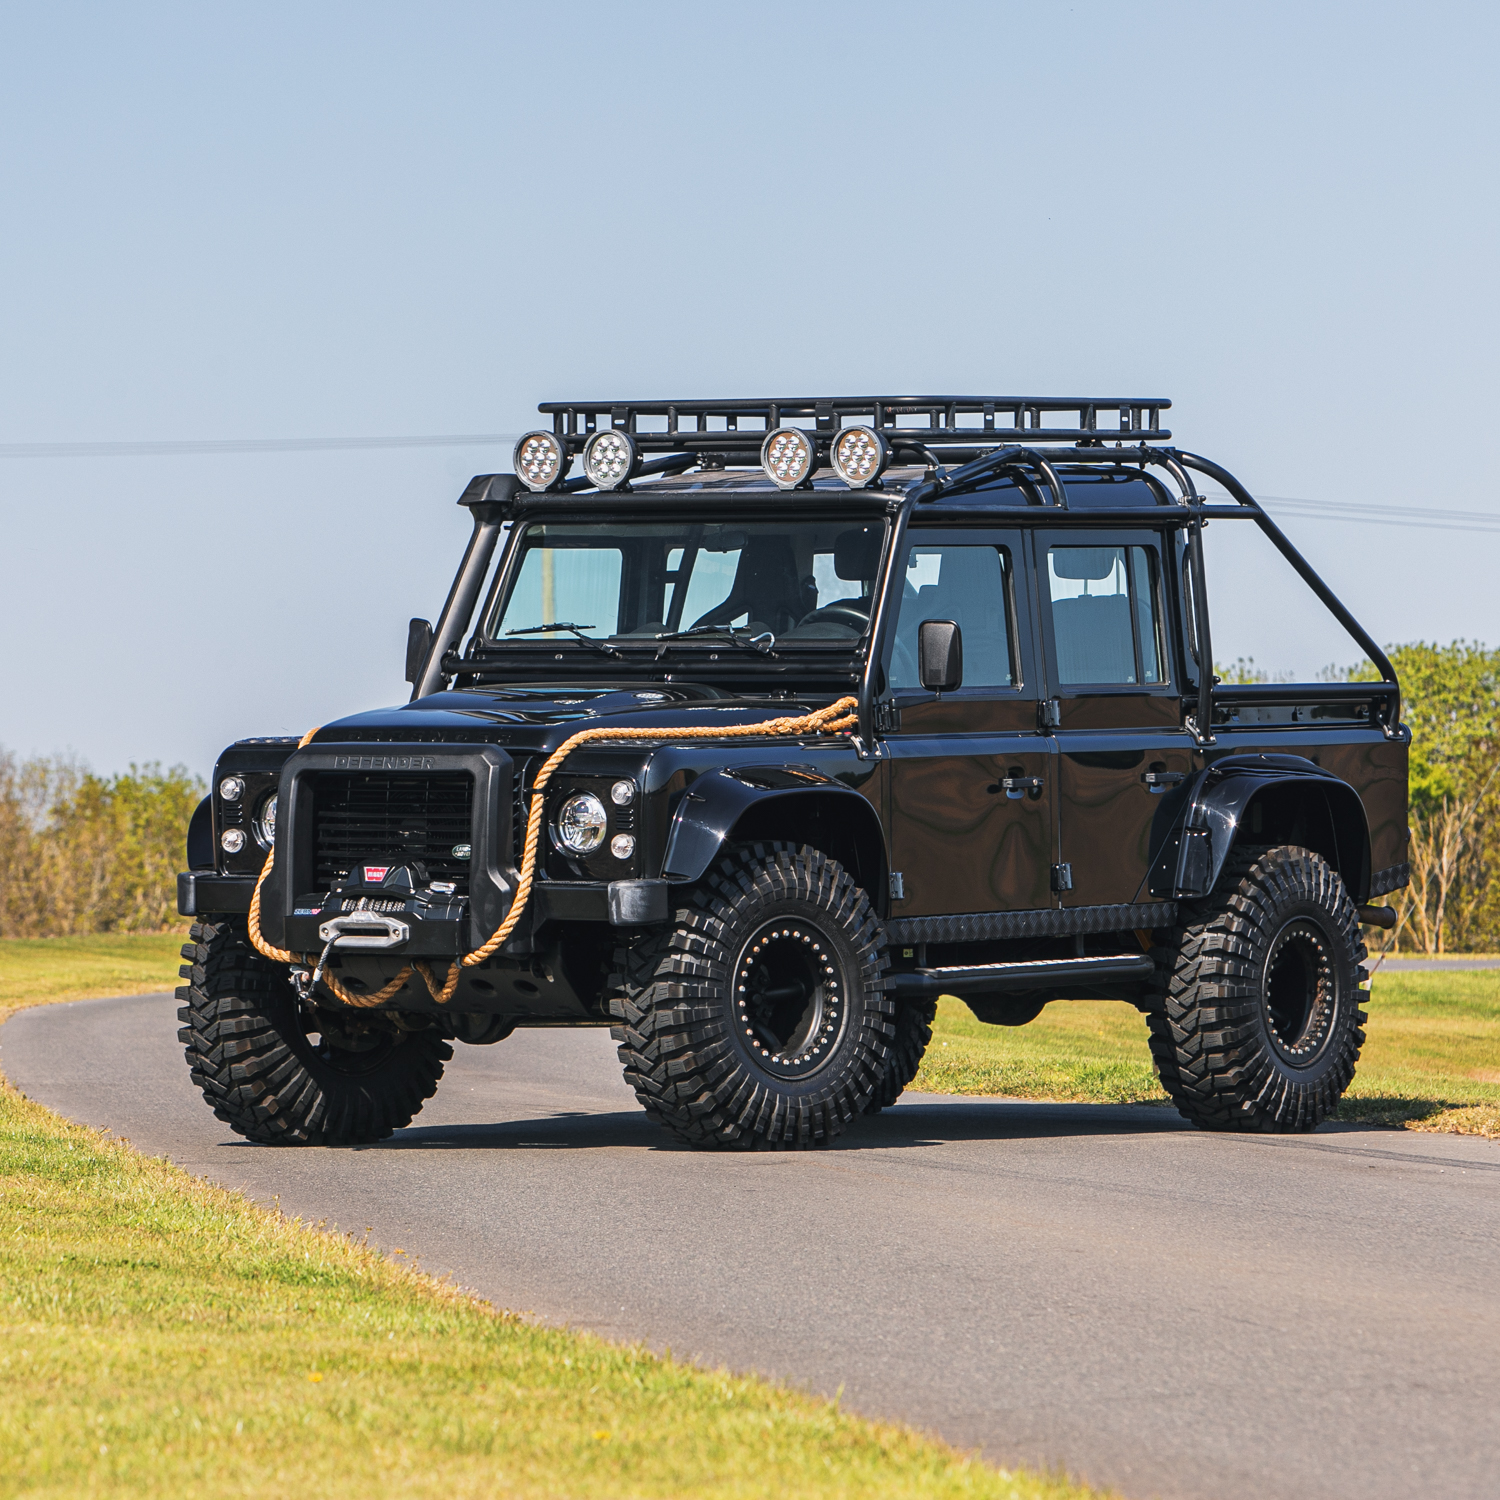 2015 Land Rover Defender 110 SVX 'Spectre' JB24 - Image 26 of 26